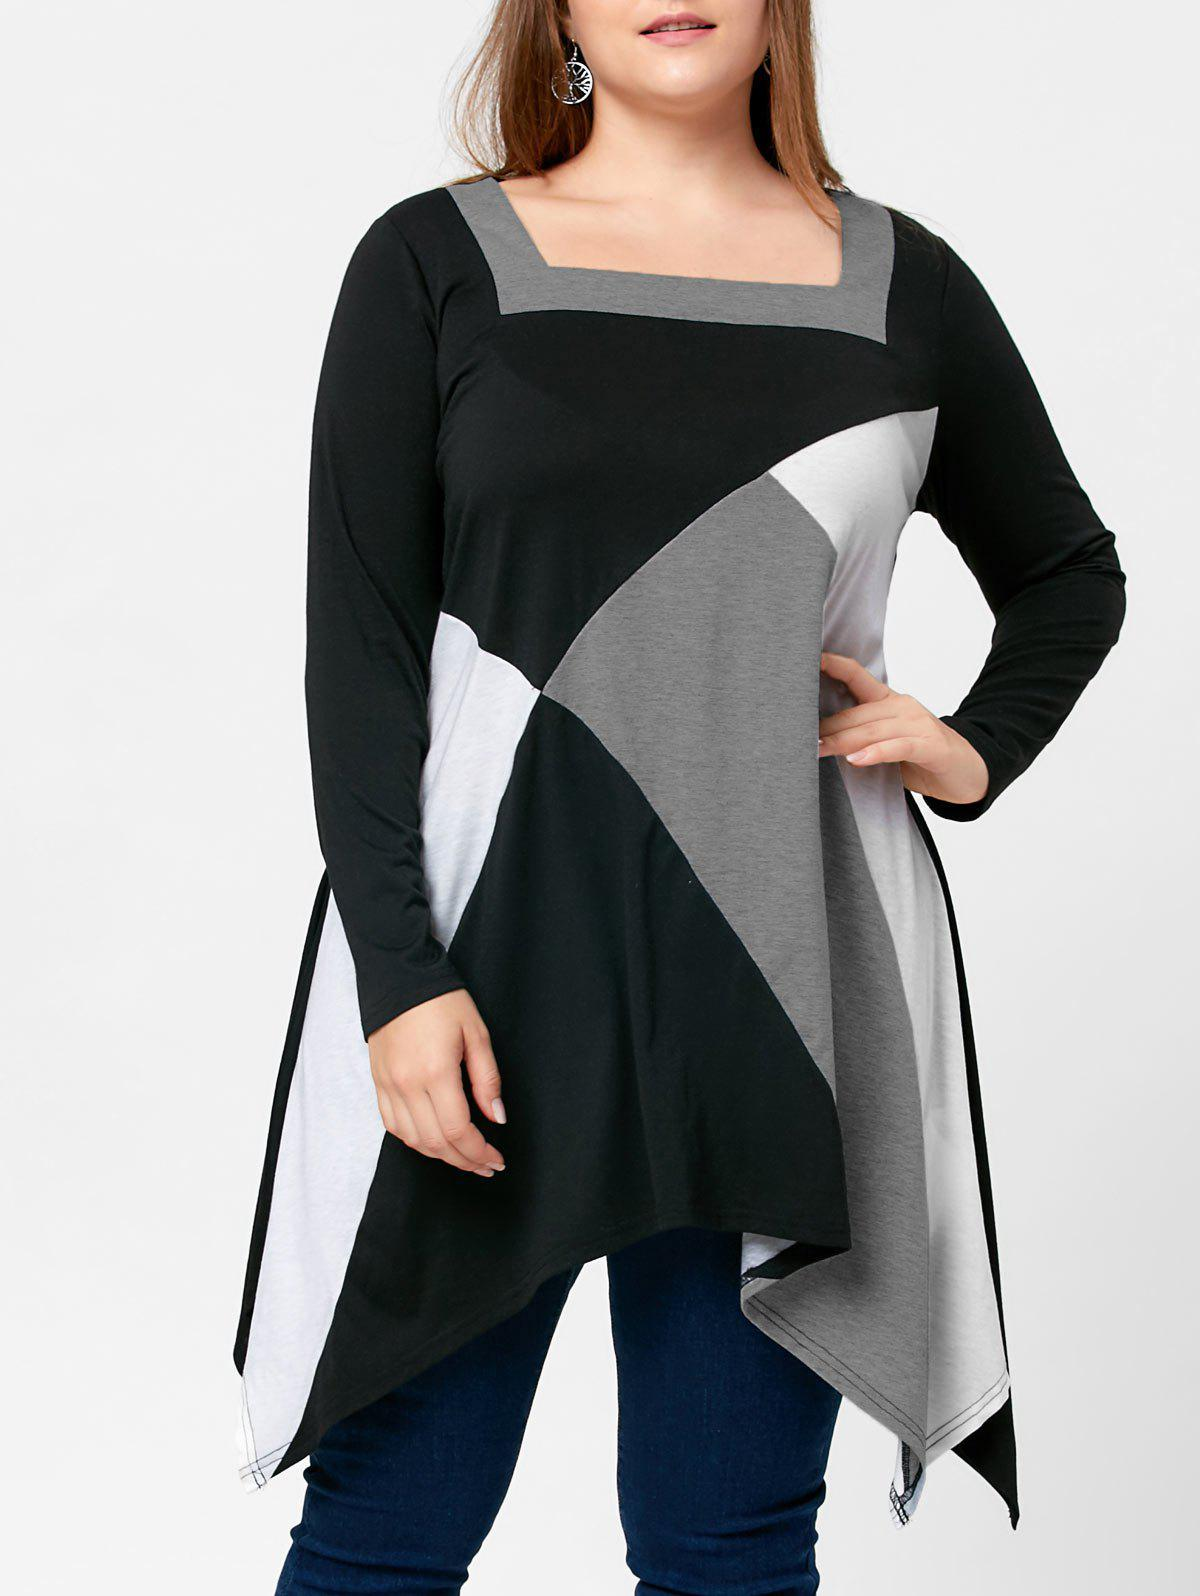 Plus Size Square Neck Handkerchief T-shirtWOMEN<br><br>Size: 5XL; Color: BLACK; Material: Polyester,Spandex; Shirt Length: Long; Sleeve Length: Full; Collar: Square Neck; Style: Casual; Season: Fall,Spring; Pattern Type: Others,Solid; Weight: 0.3700kg; Package Contents: 1 x Top;